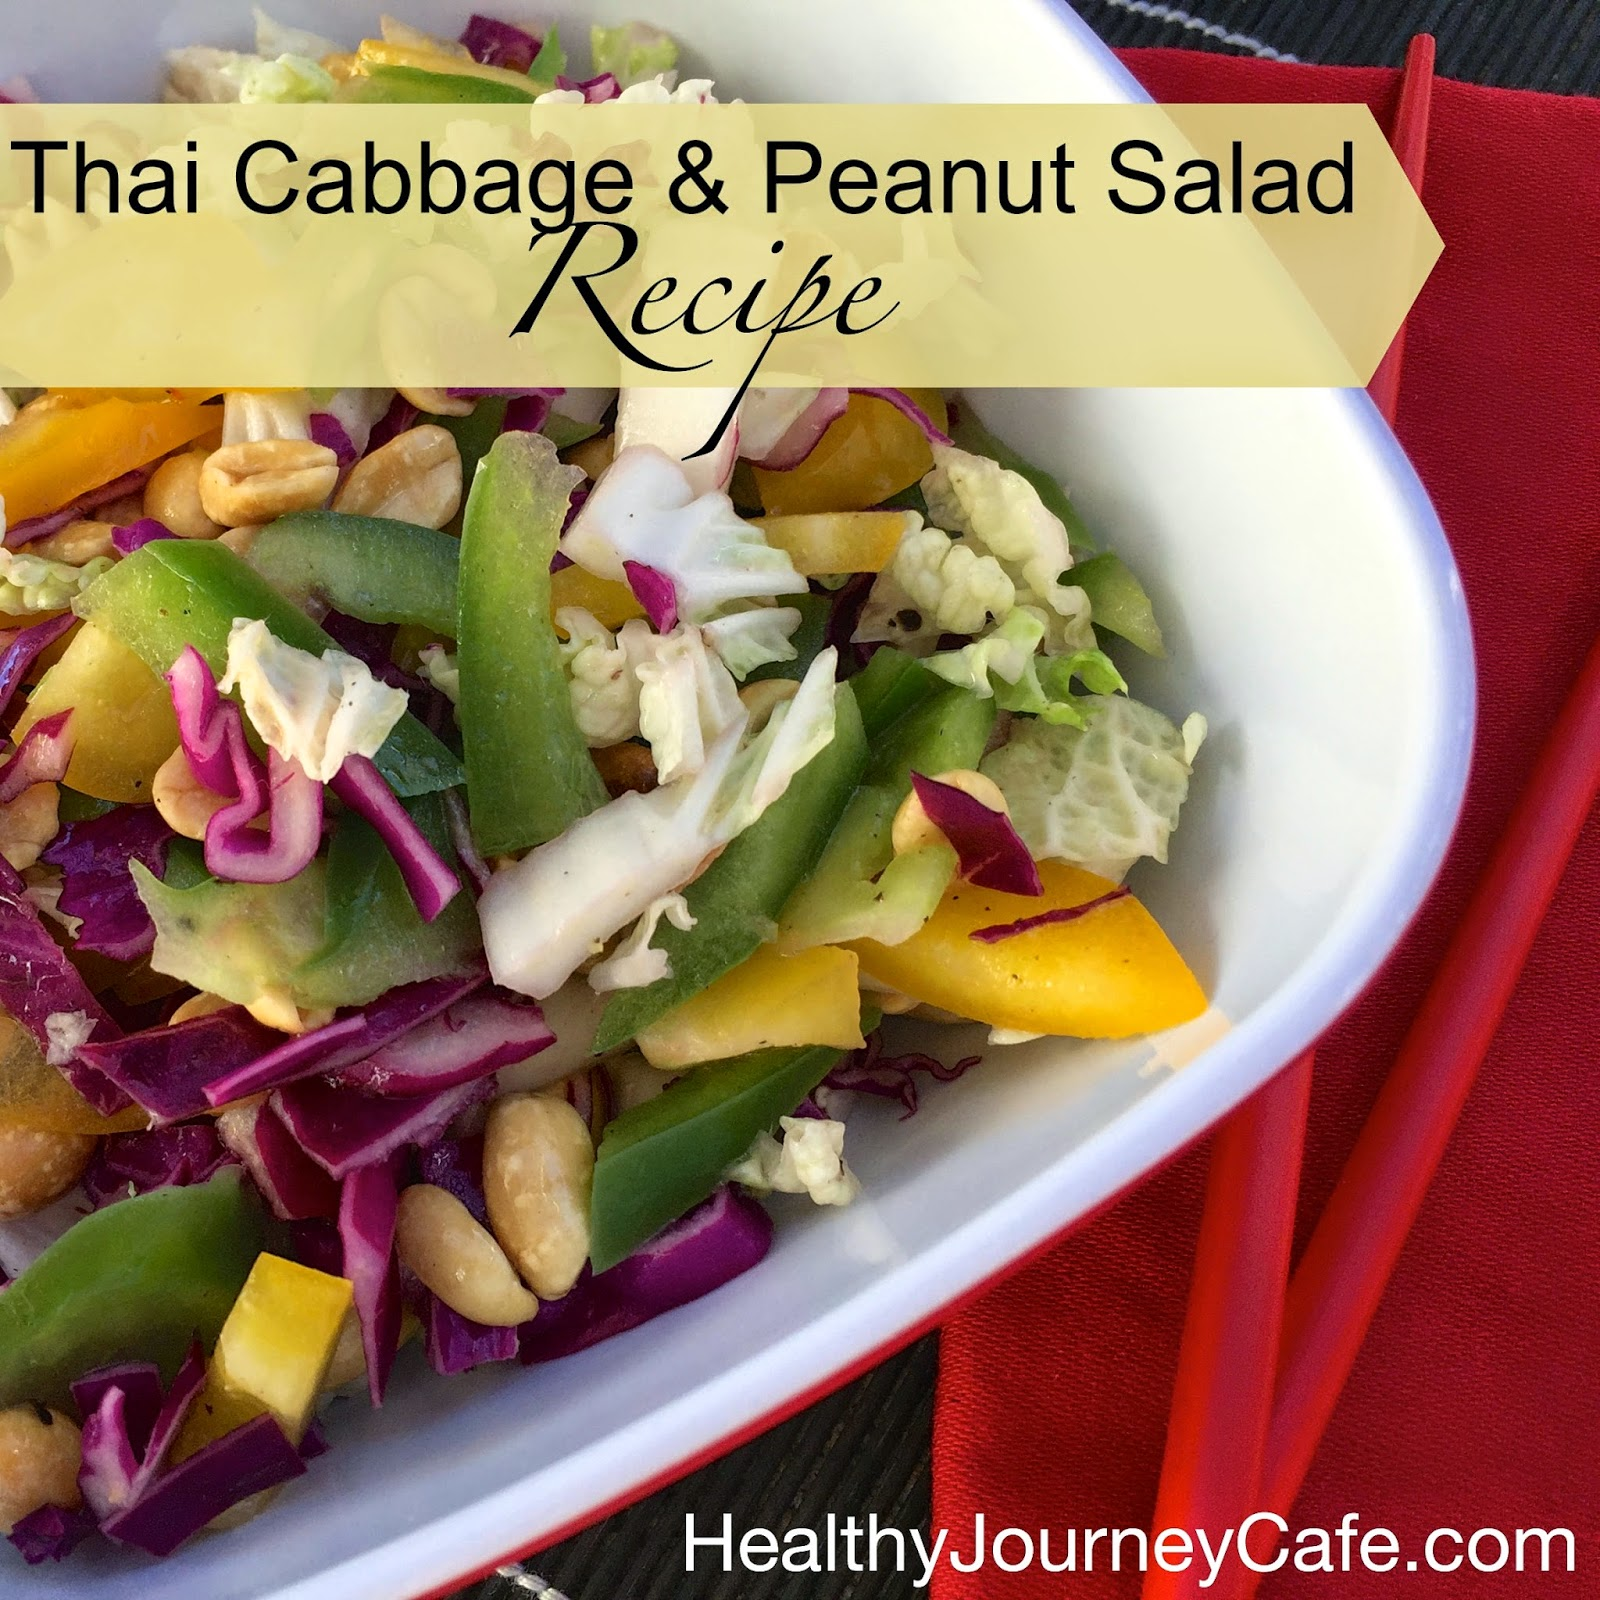 Thai Cabbage & Peanut Salad